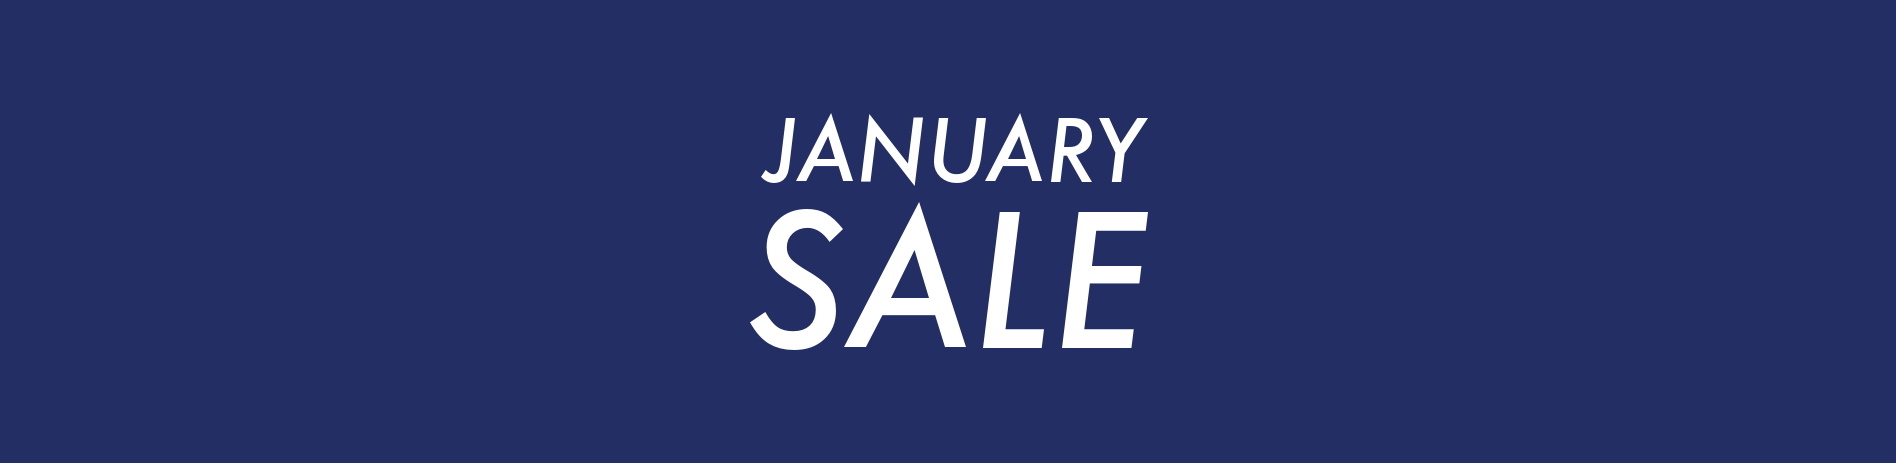 JANUARY SALES for bridge supplies